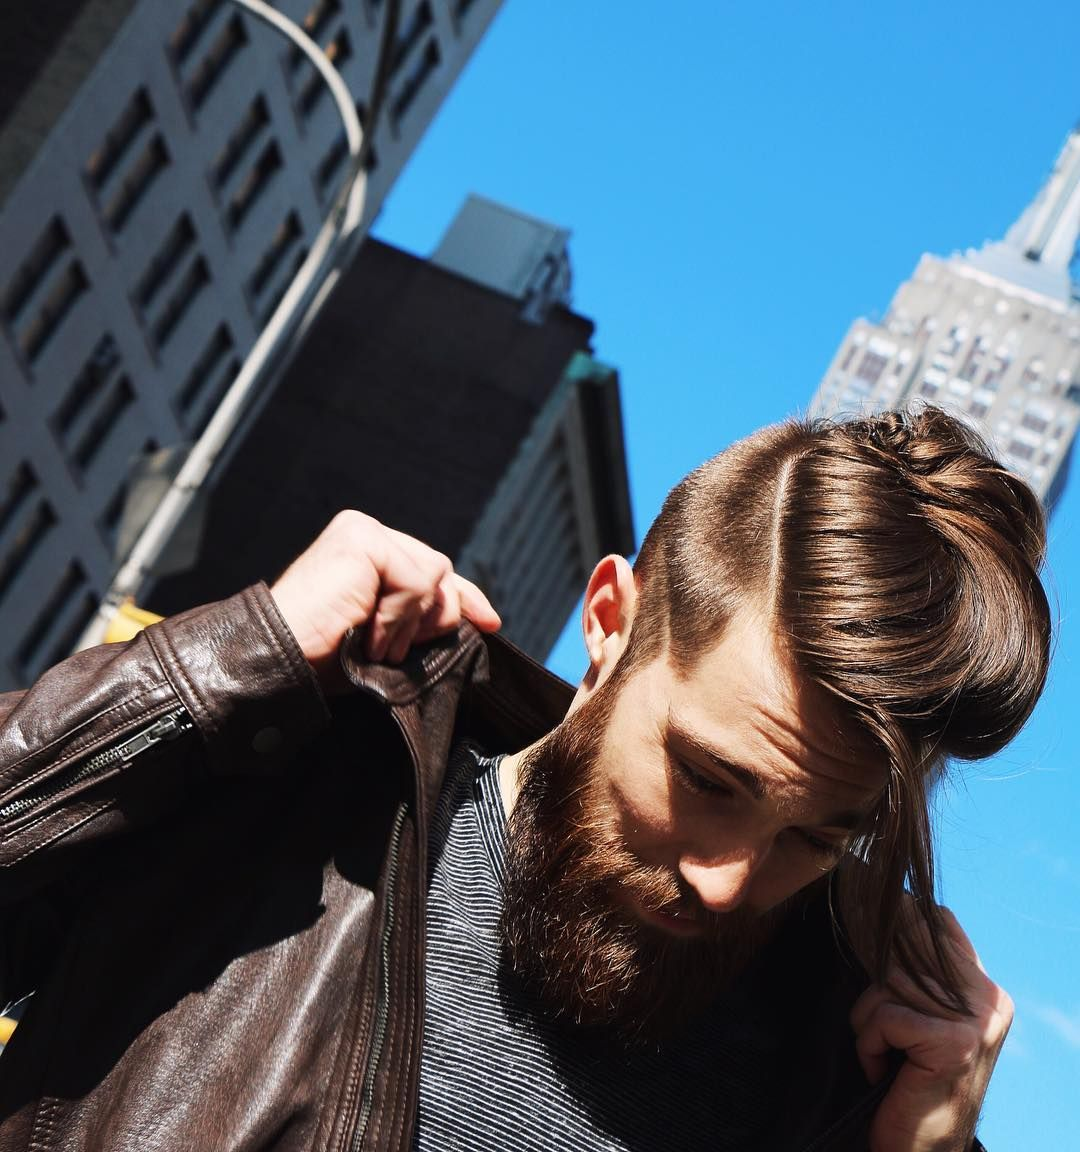 Fetish Barber Photo Awesome Hairstyle Pinterest Pompadour